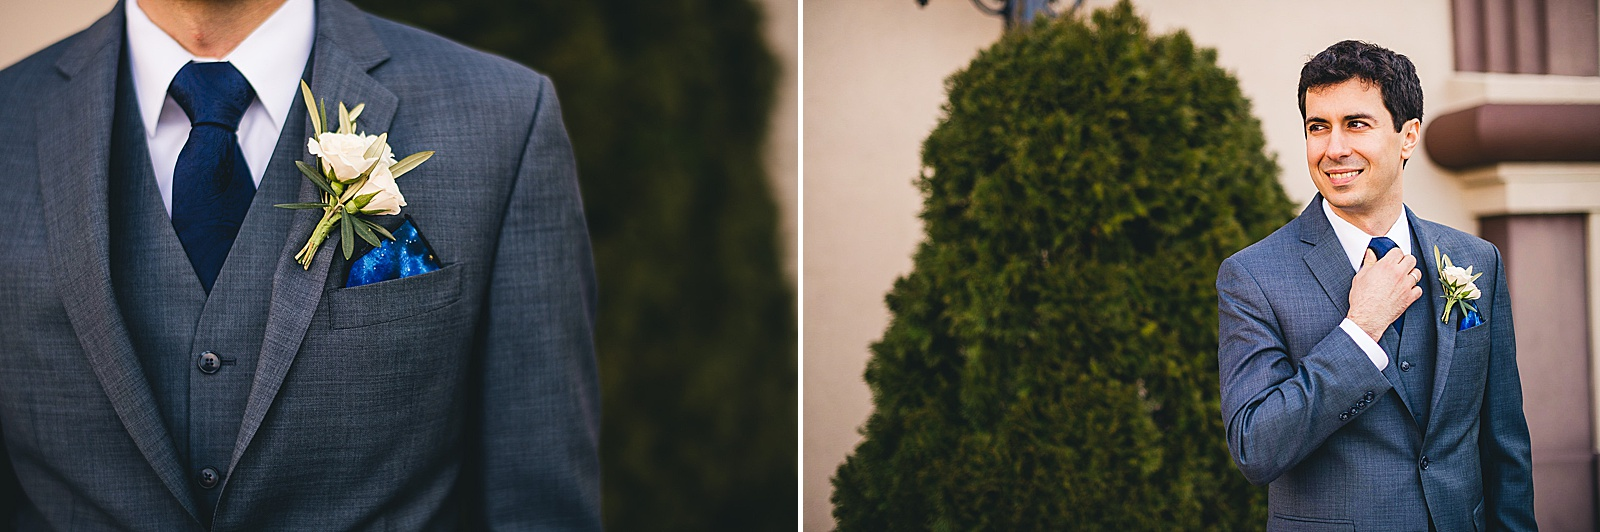 12 groom at drury lane wedding - Oakbrook Wedding Photos at Drury Lane // Marina + Joe